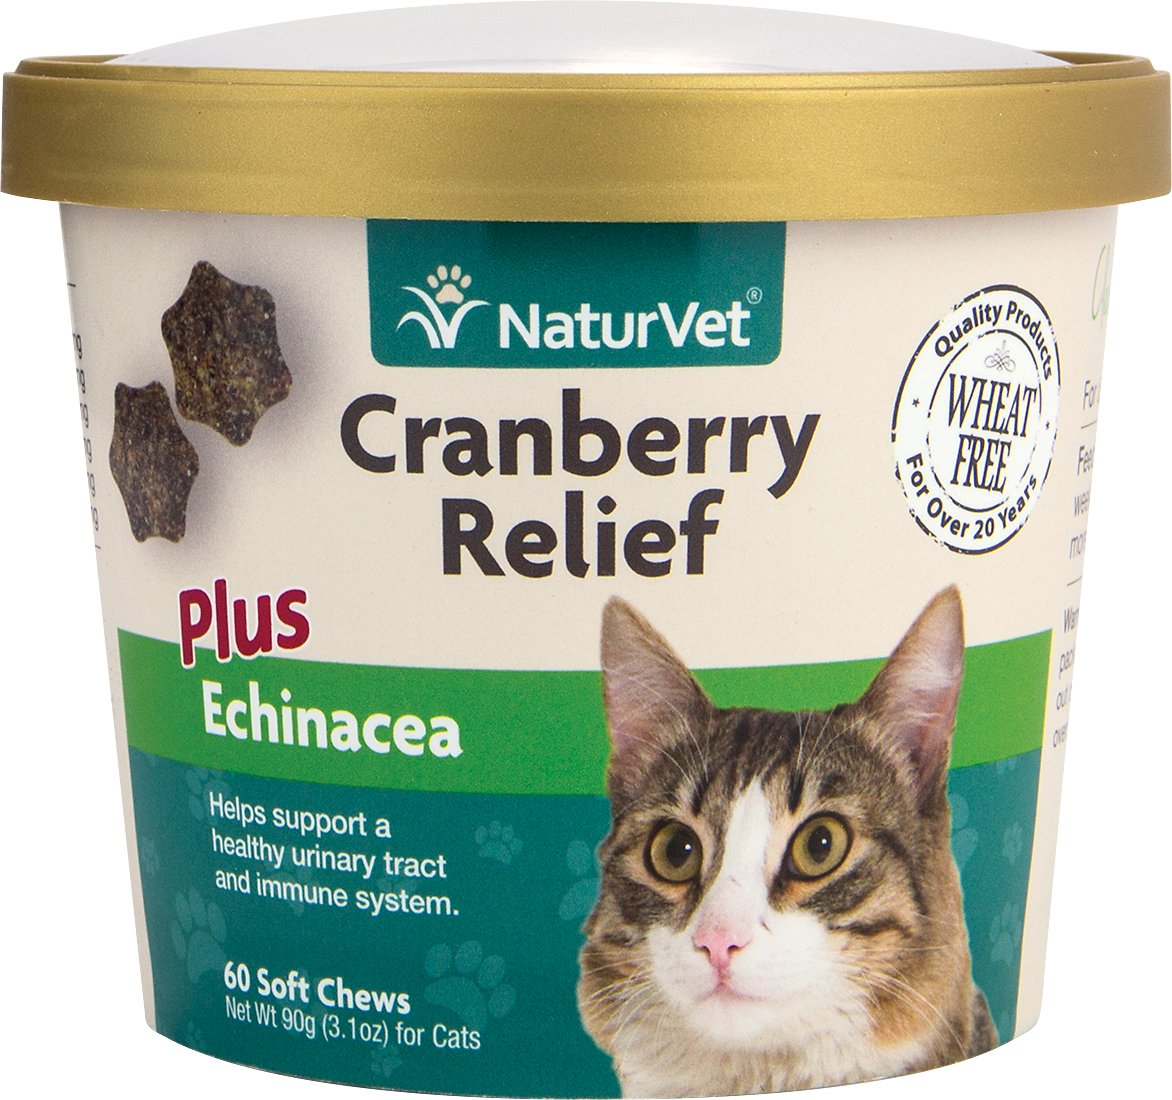 NaturVet Cranberry Relief Plus Echinacea Cat Soft Chews, 60-count Image